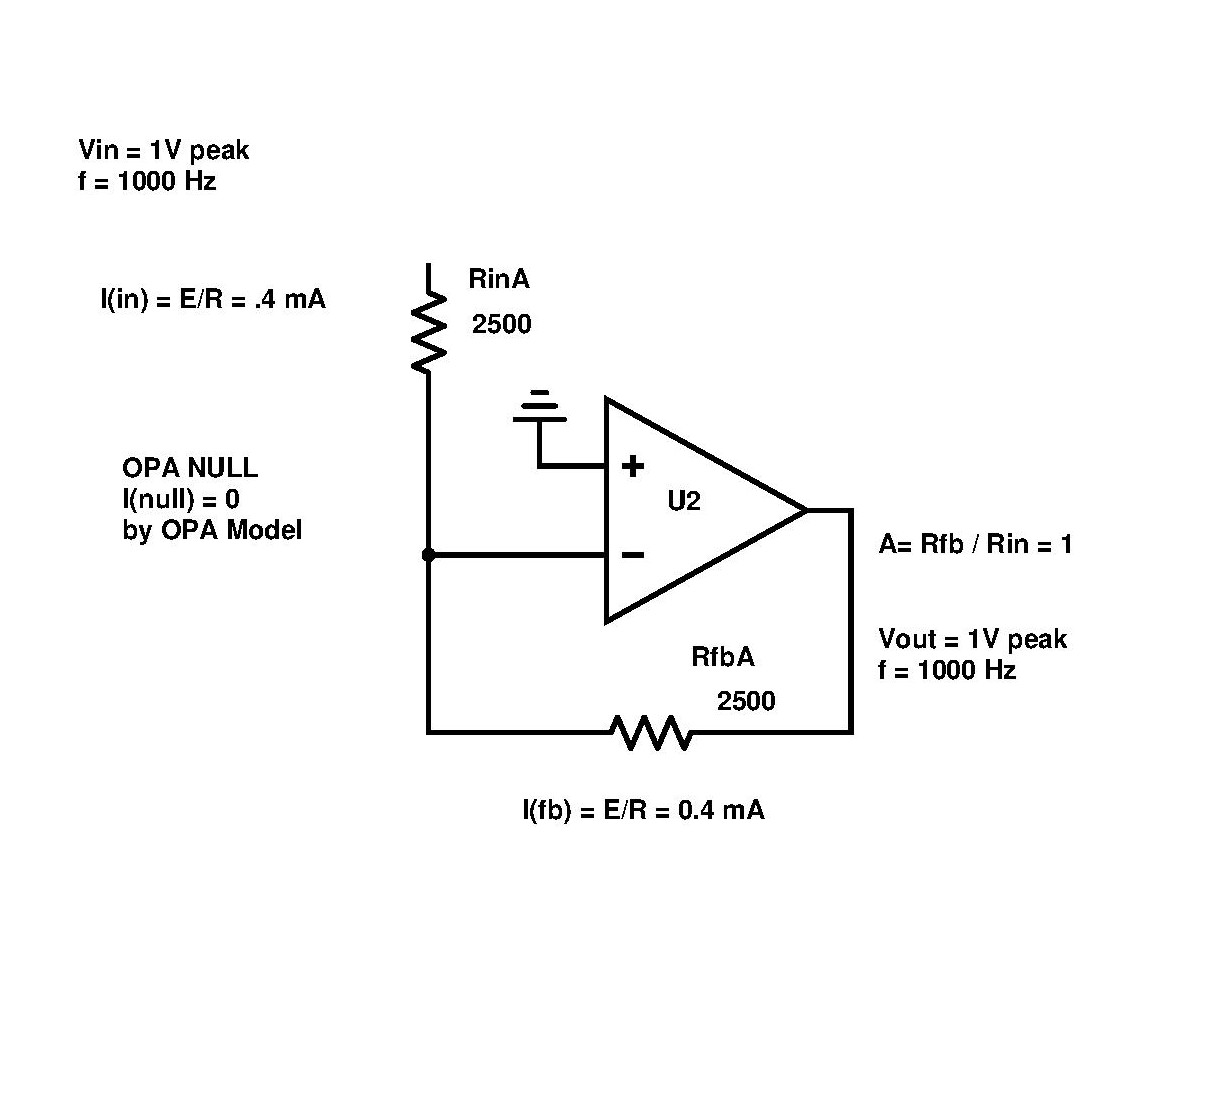 What is a proper Analysis of this Variant OPA Diode Limiter